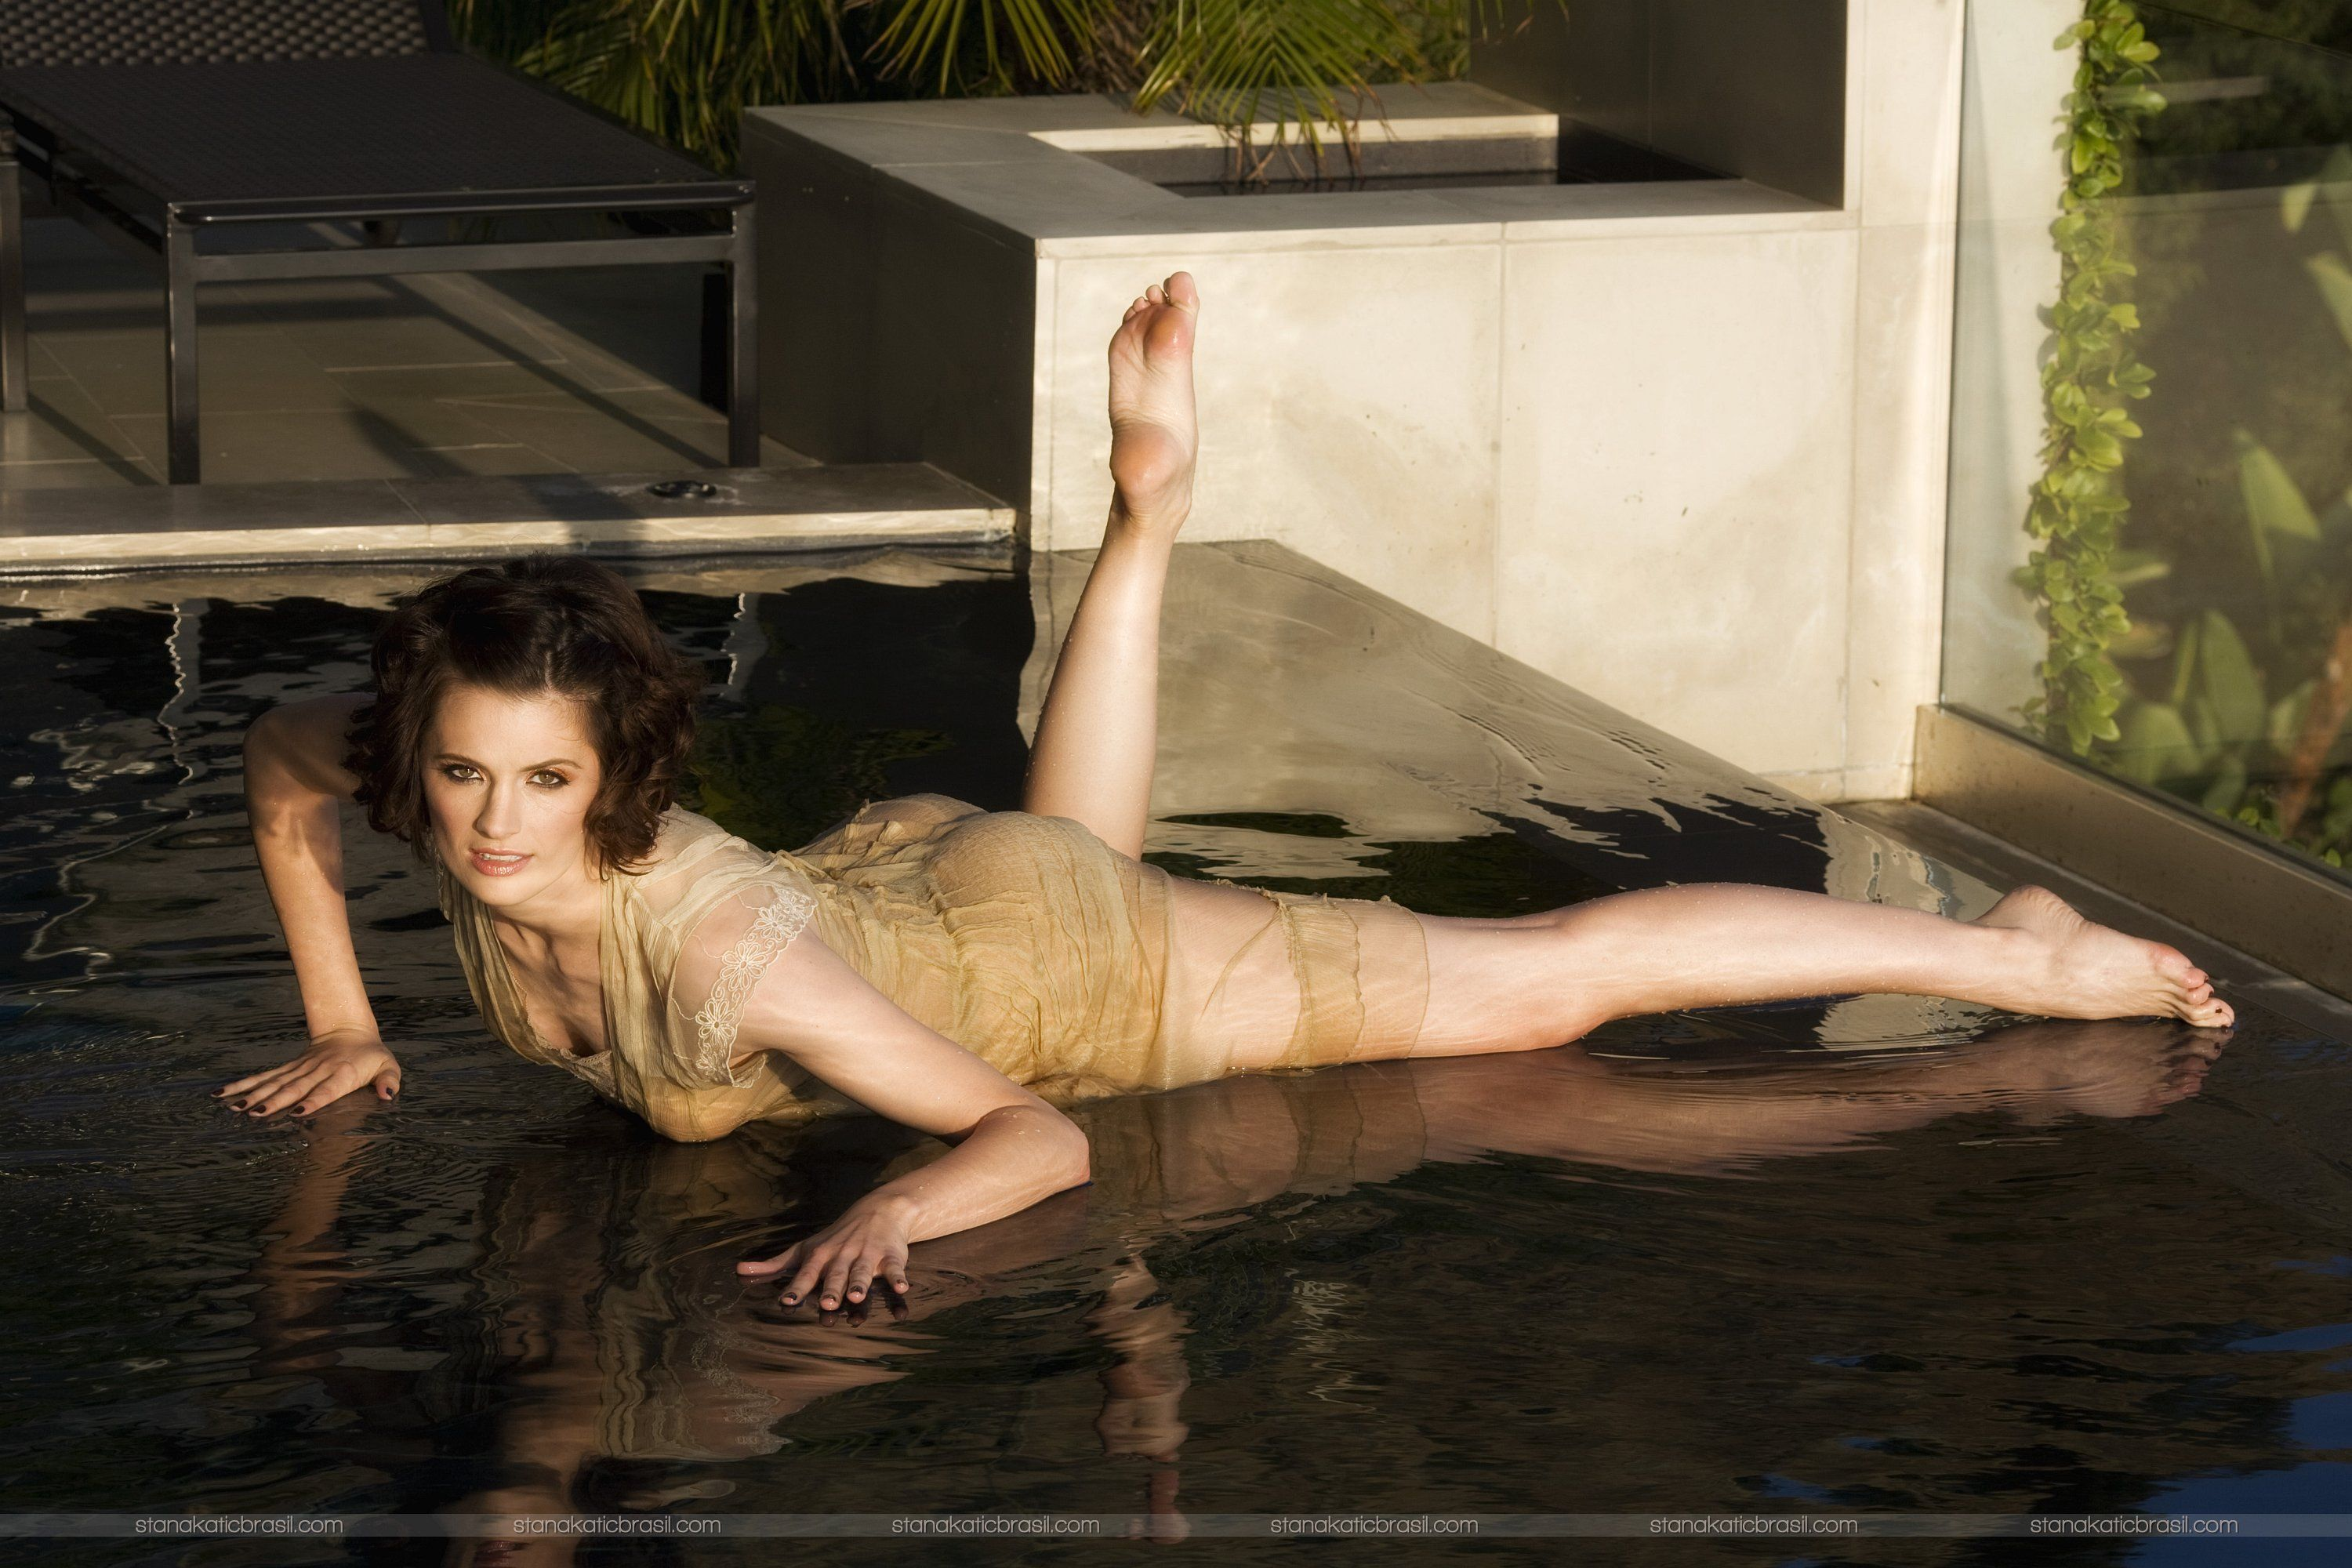 stana-katic-naked-photoshoot-asian-toon-naked